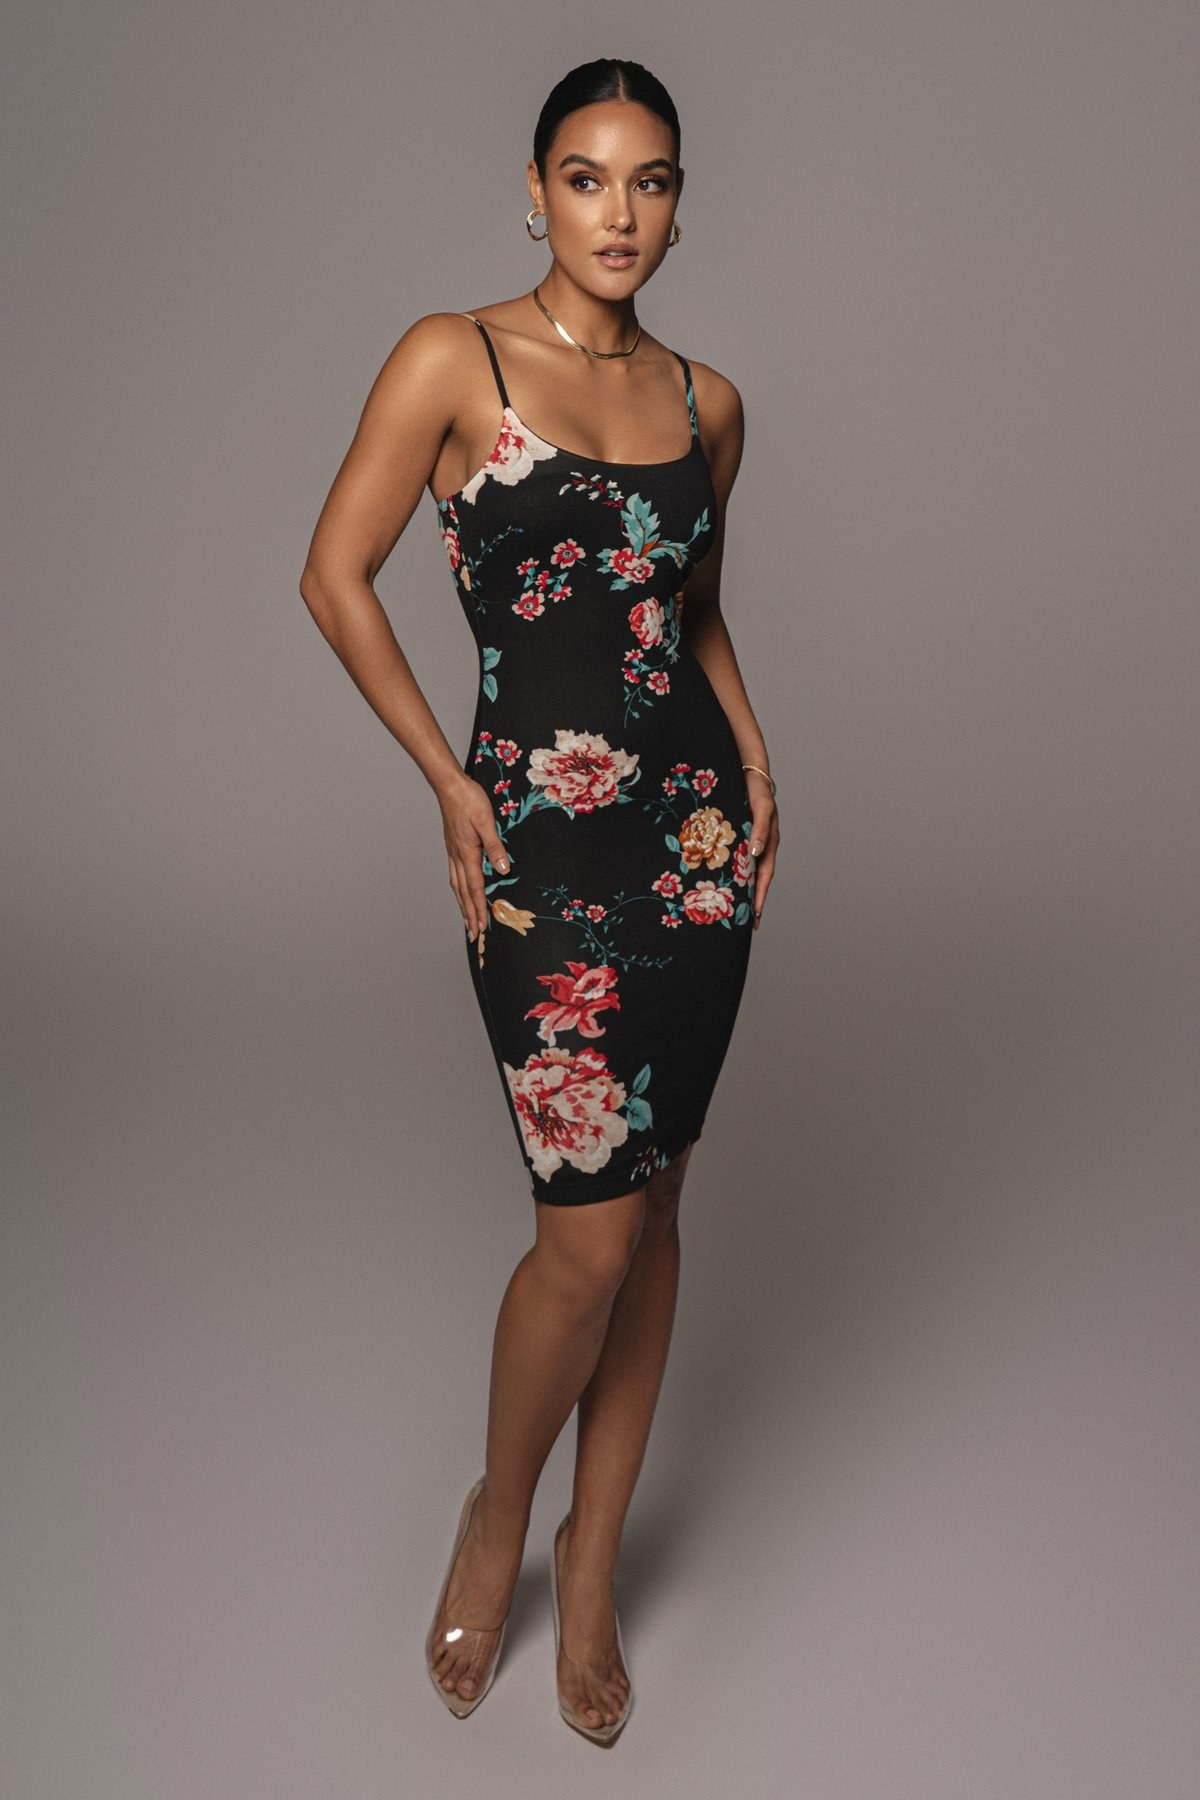 model wearing spaghetti strap black mini dress with a large floral pattern on it